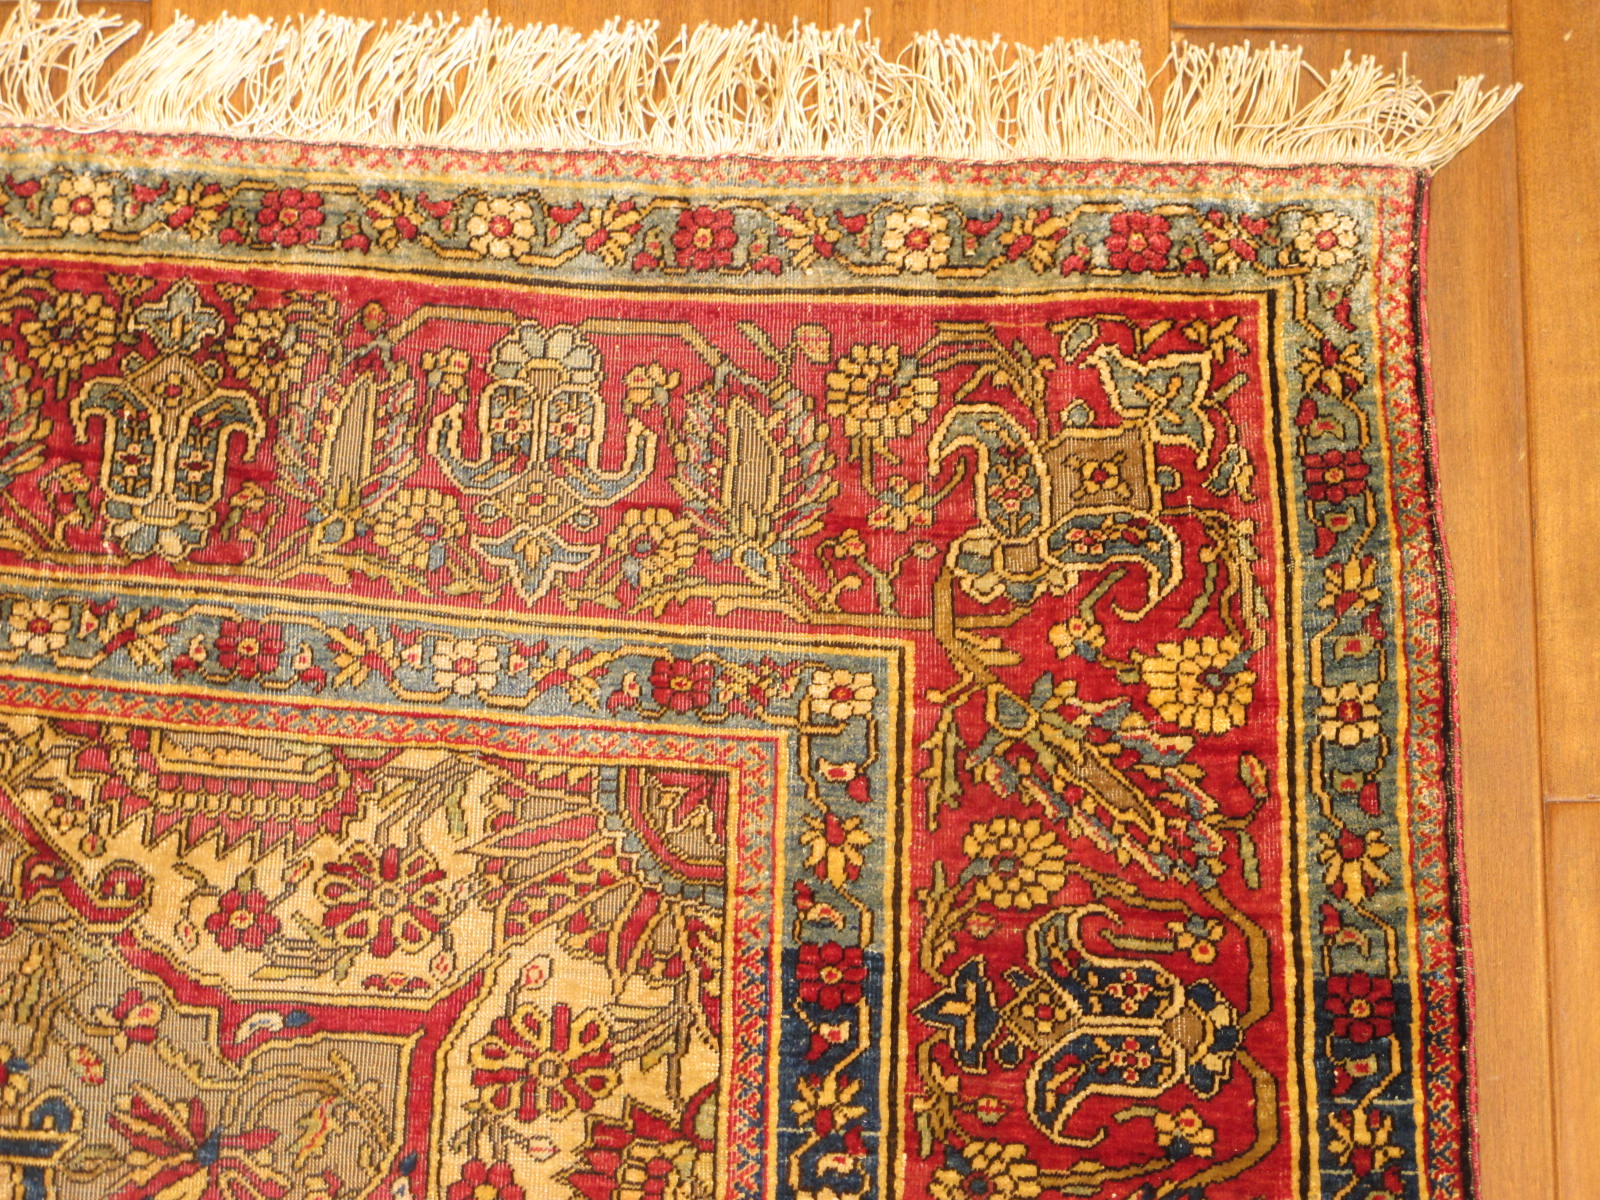 23206 antique persian kashan mohtasham silk rug 4,4 x 7,4 (2)